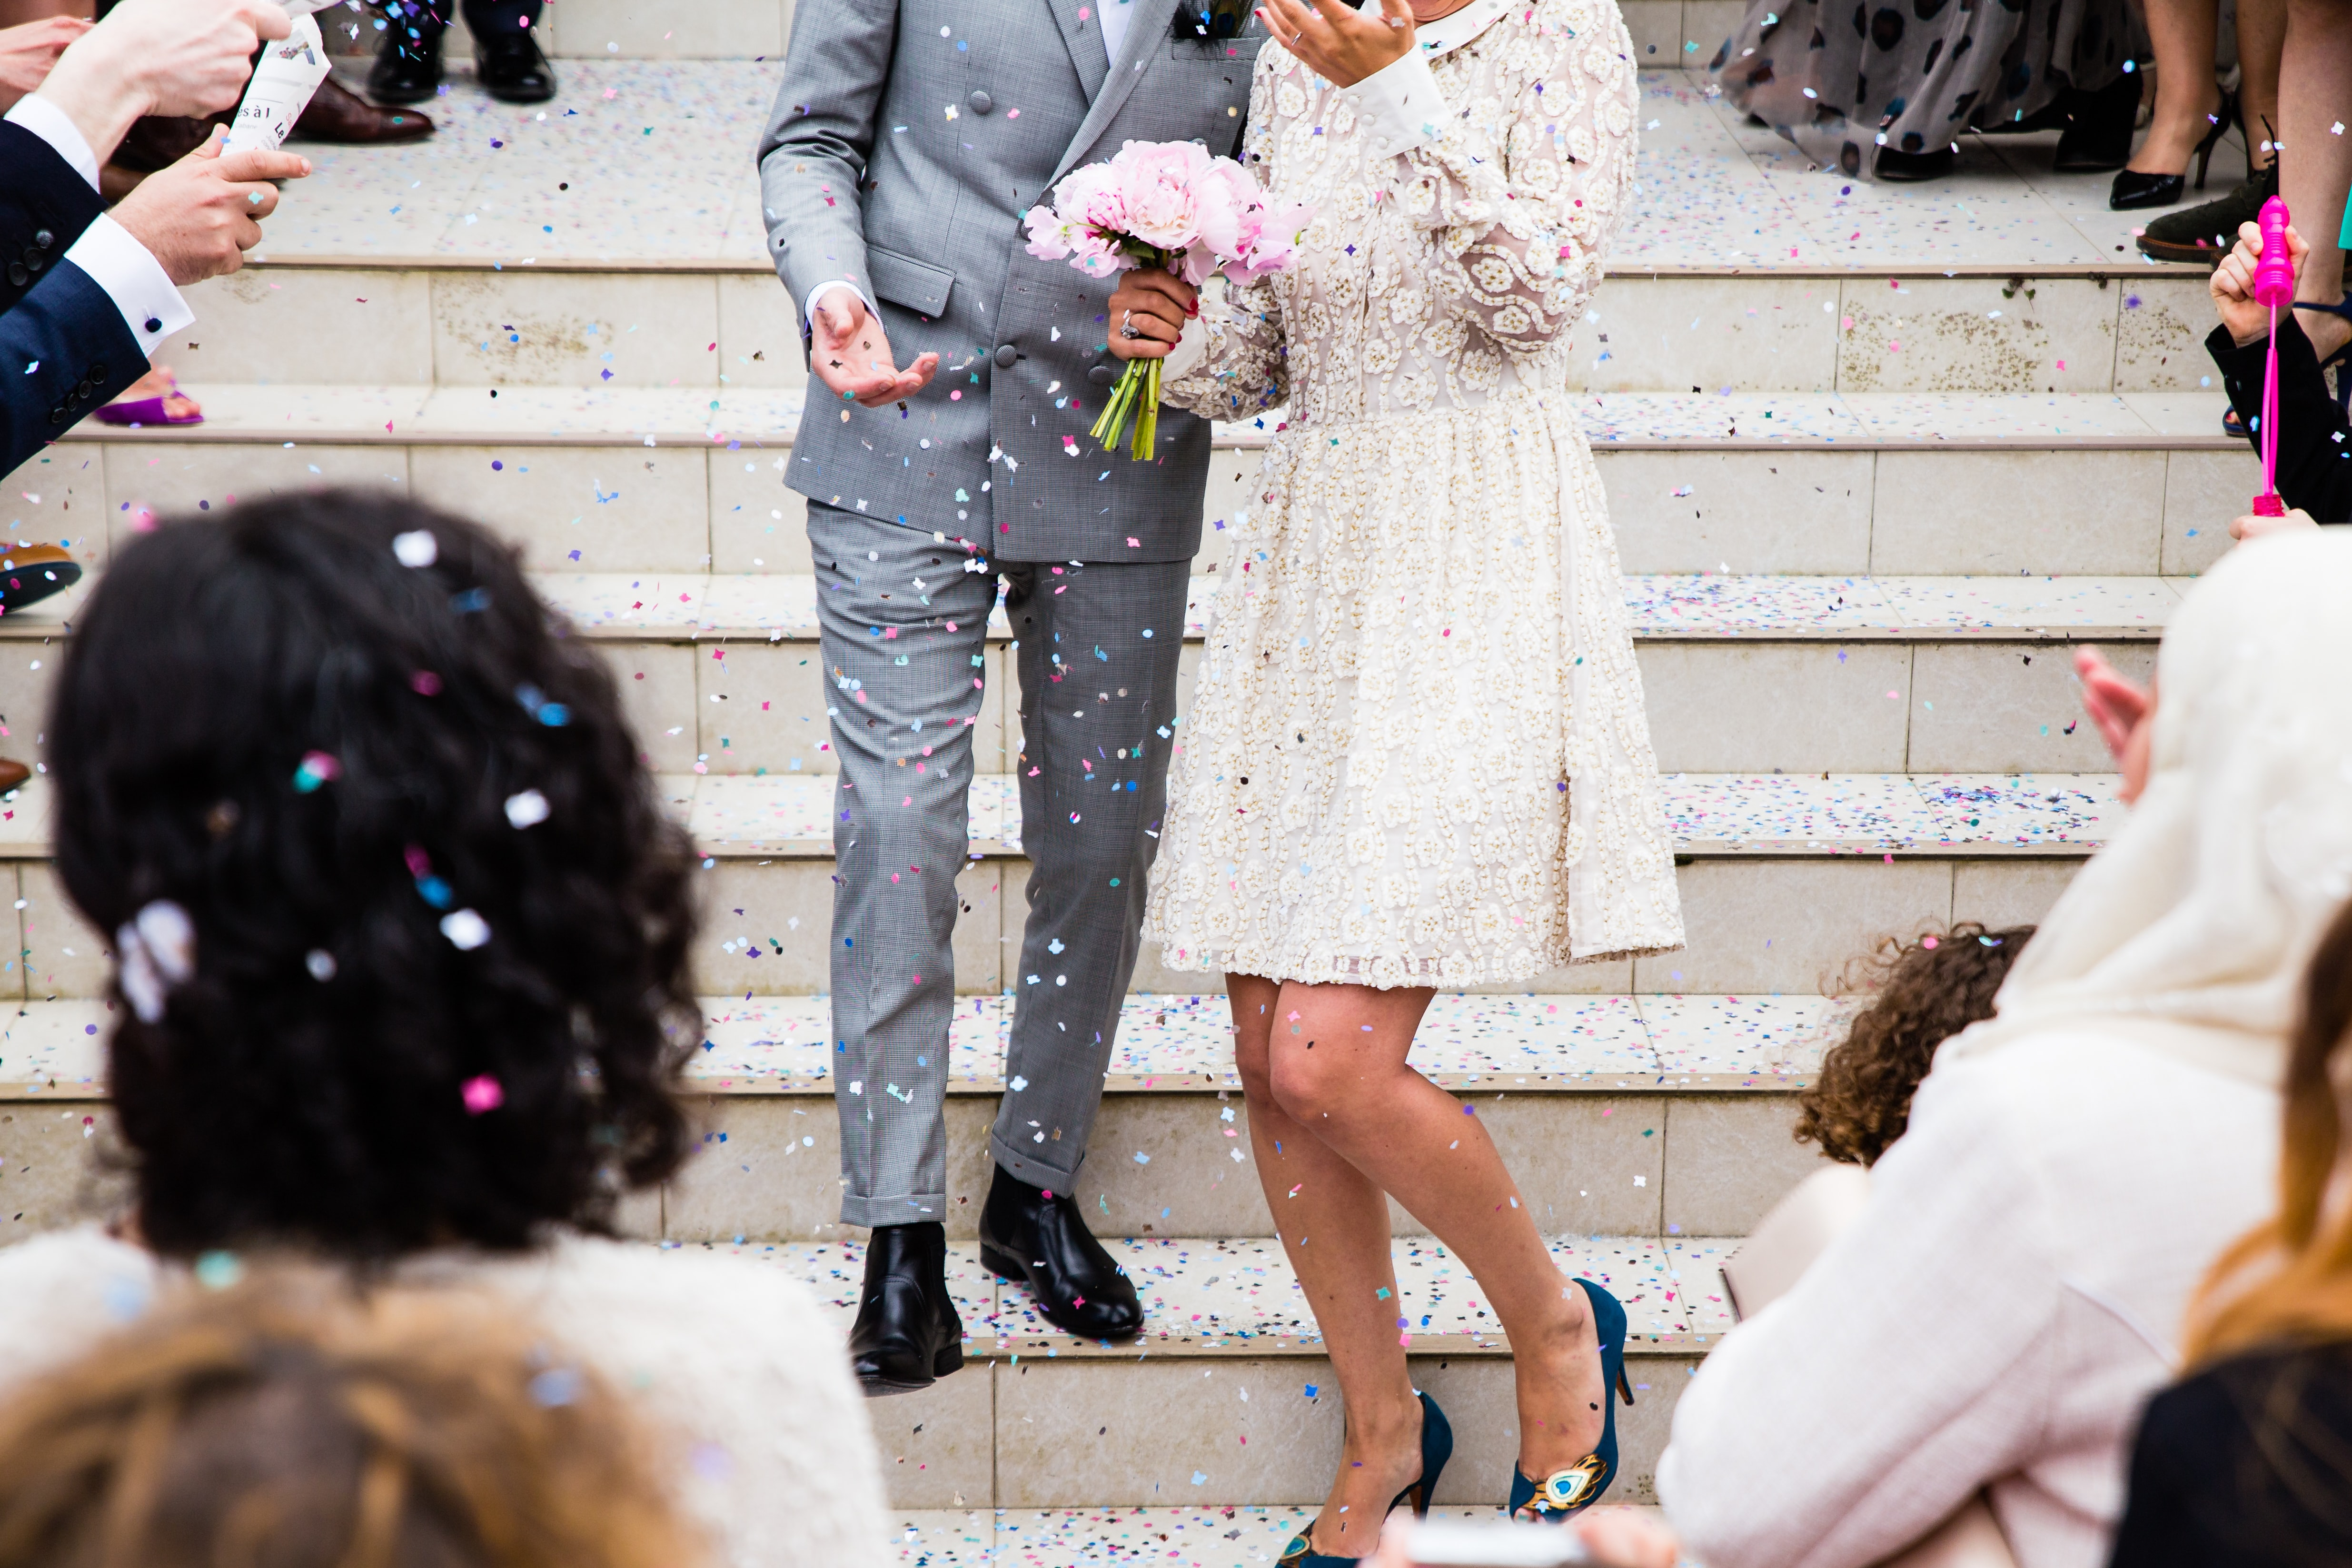 Crowd of well-wishers throws glitter onto newlyweds descending a staircase